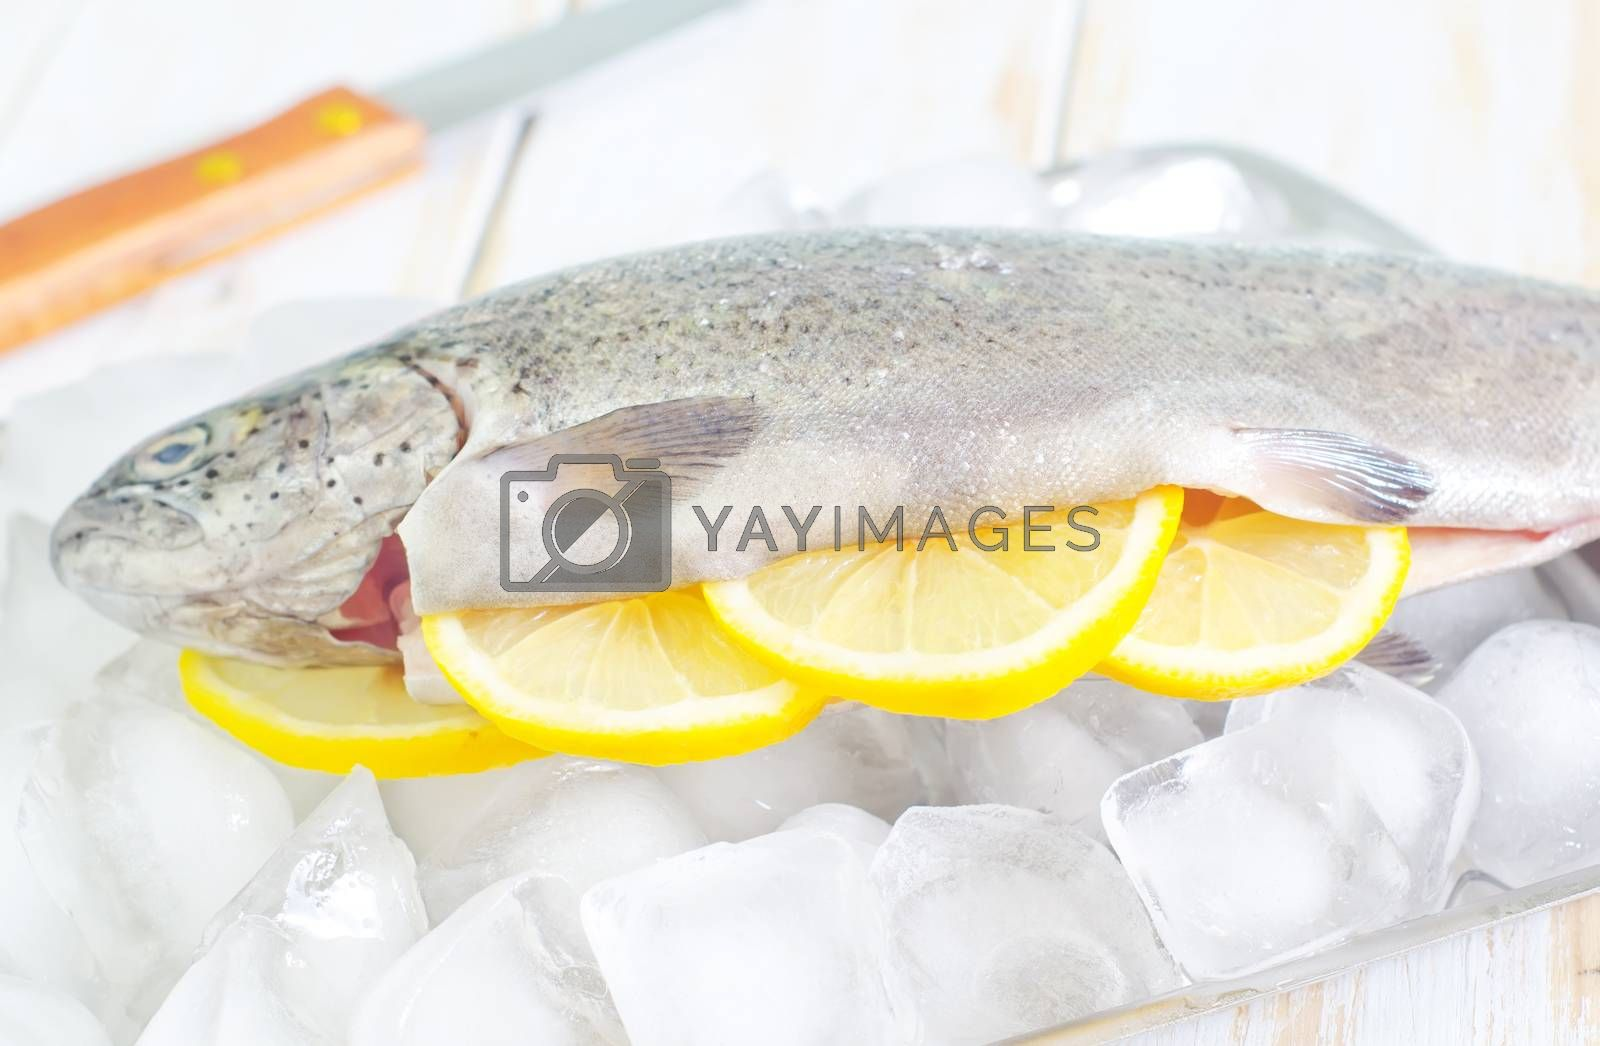 Royalty free image of raw trout by tycoon